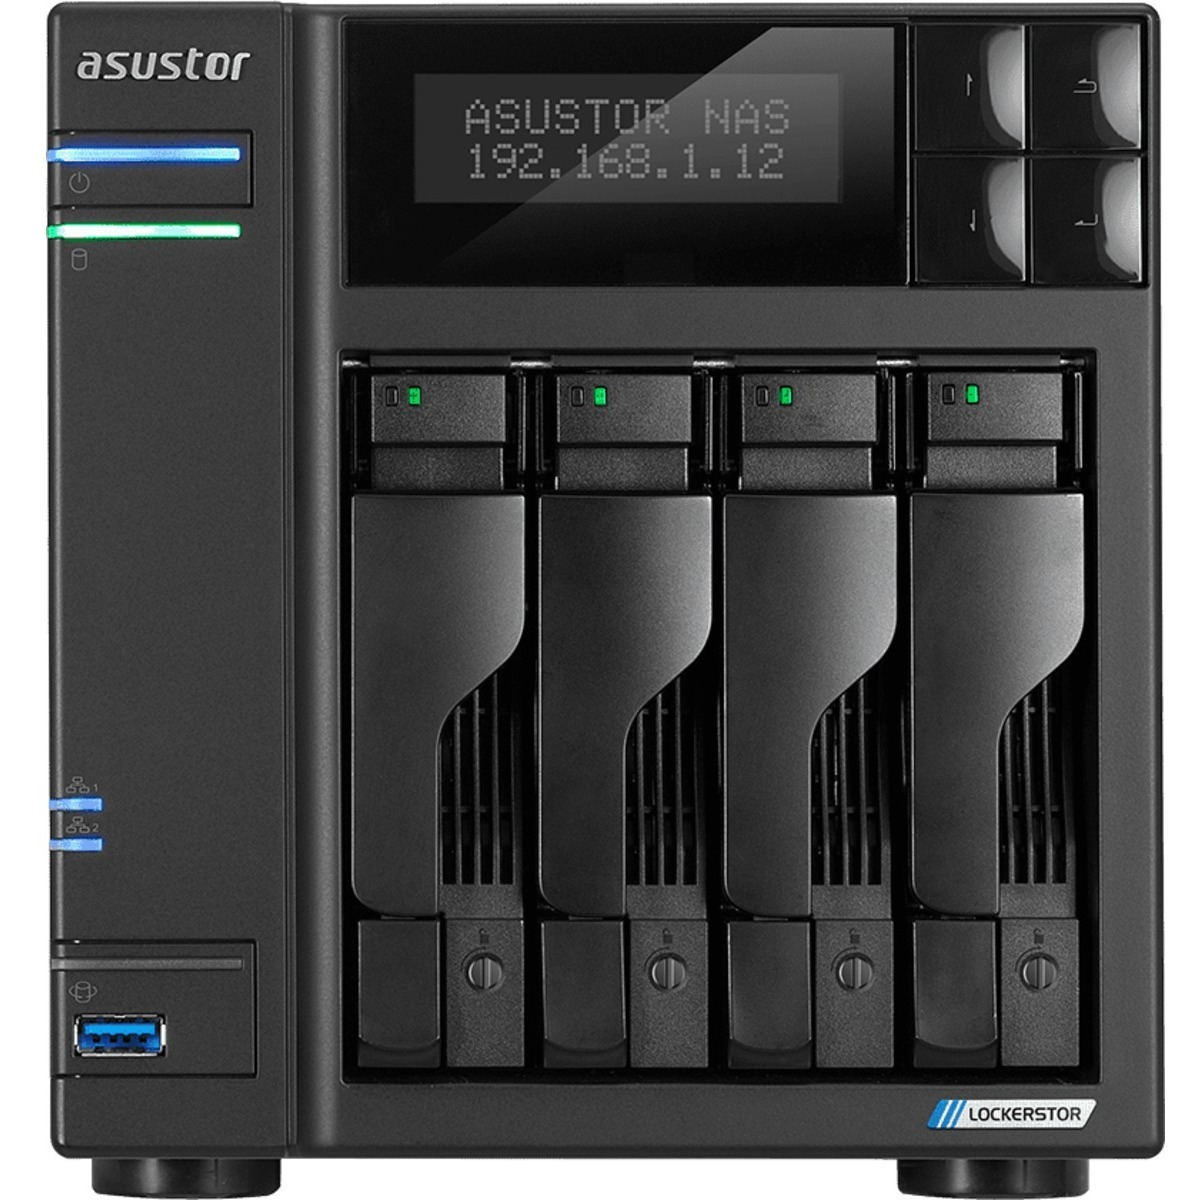 buy $1536 ASUSTOR AS6604T Lockerstor 4 20tb Desktop NAS - Network Attached Storage Device 2x10000gb Western Digital Red Pro WD102KFBX 3.5 7200rpm SATA 6Gb/s HDD NAS Class Drives Installed - Burn-In Tested - FREE RAM UPGRADE - nas headquarters buy network attached storage server device das new raid-5 free shipping usa black friday cyber monday week month christmas holiday sale AS6604T Lockerstor 4